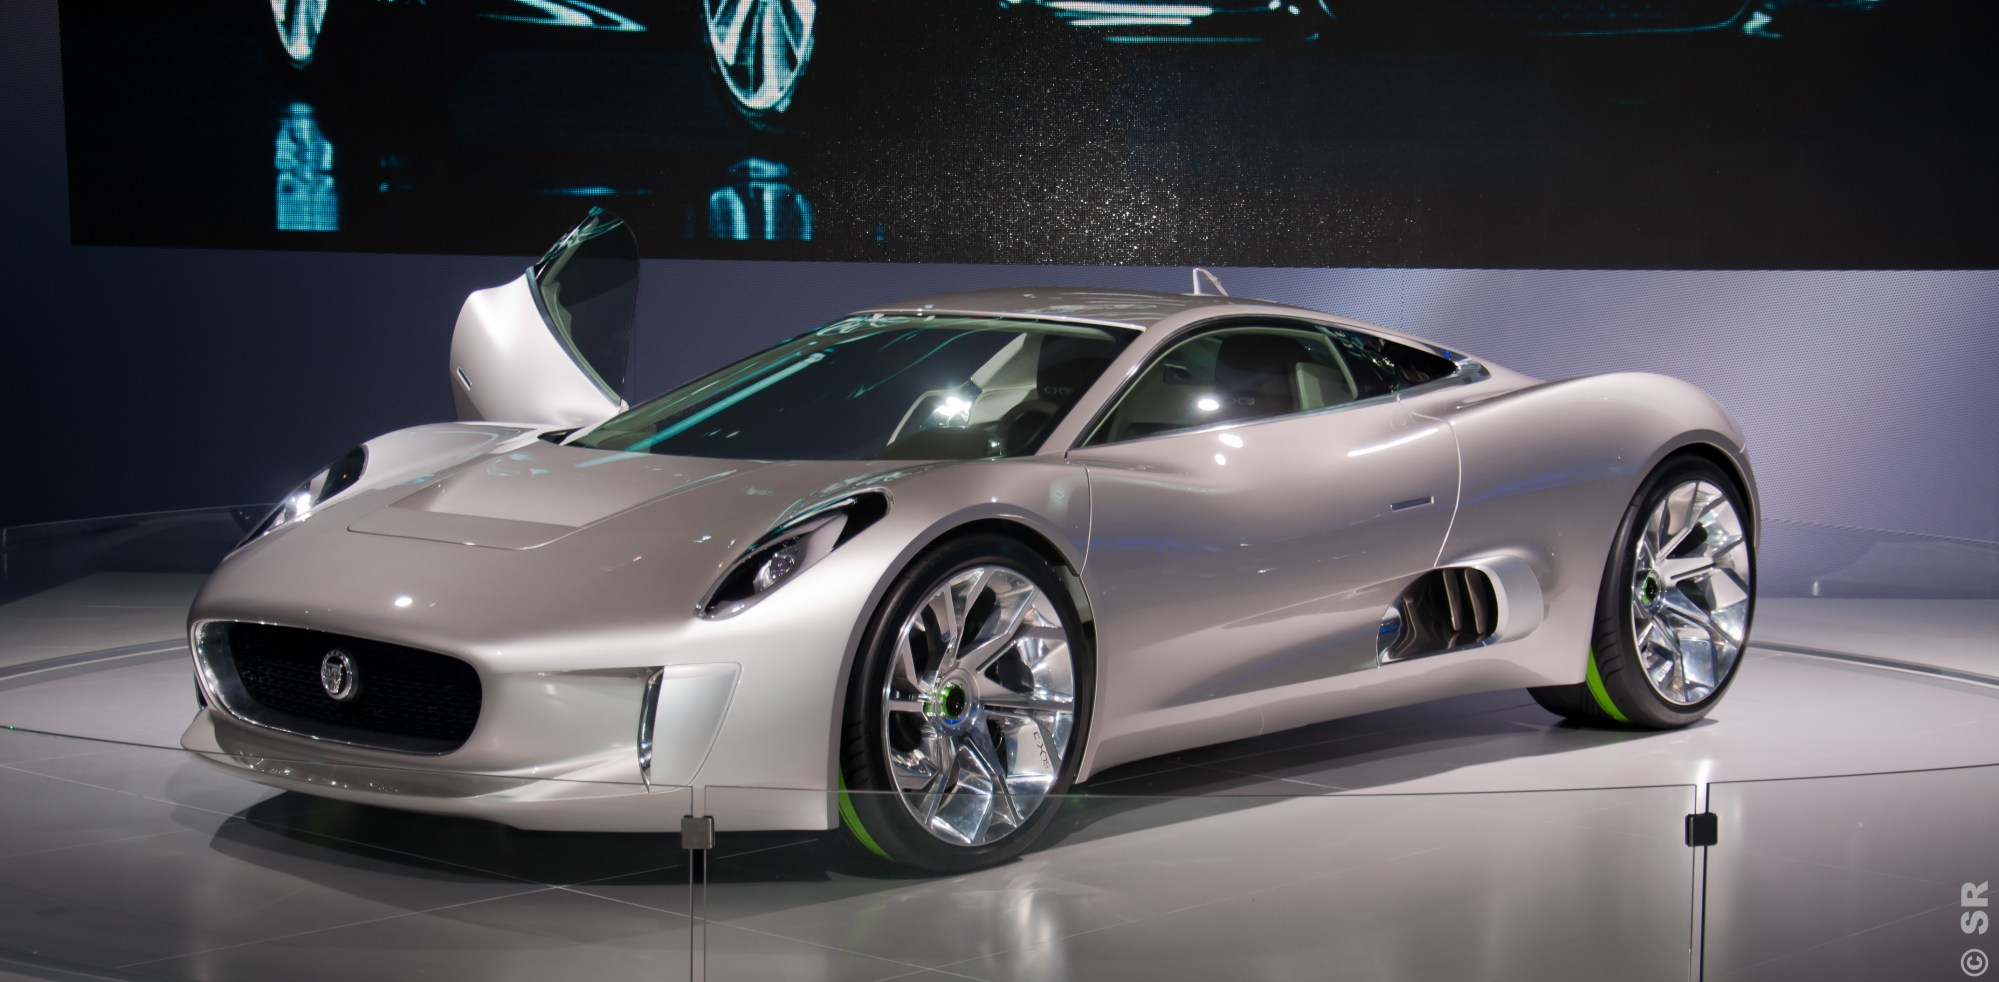 hight resolution of file silver jaguar c x75 jpg